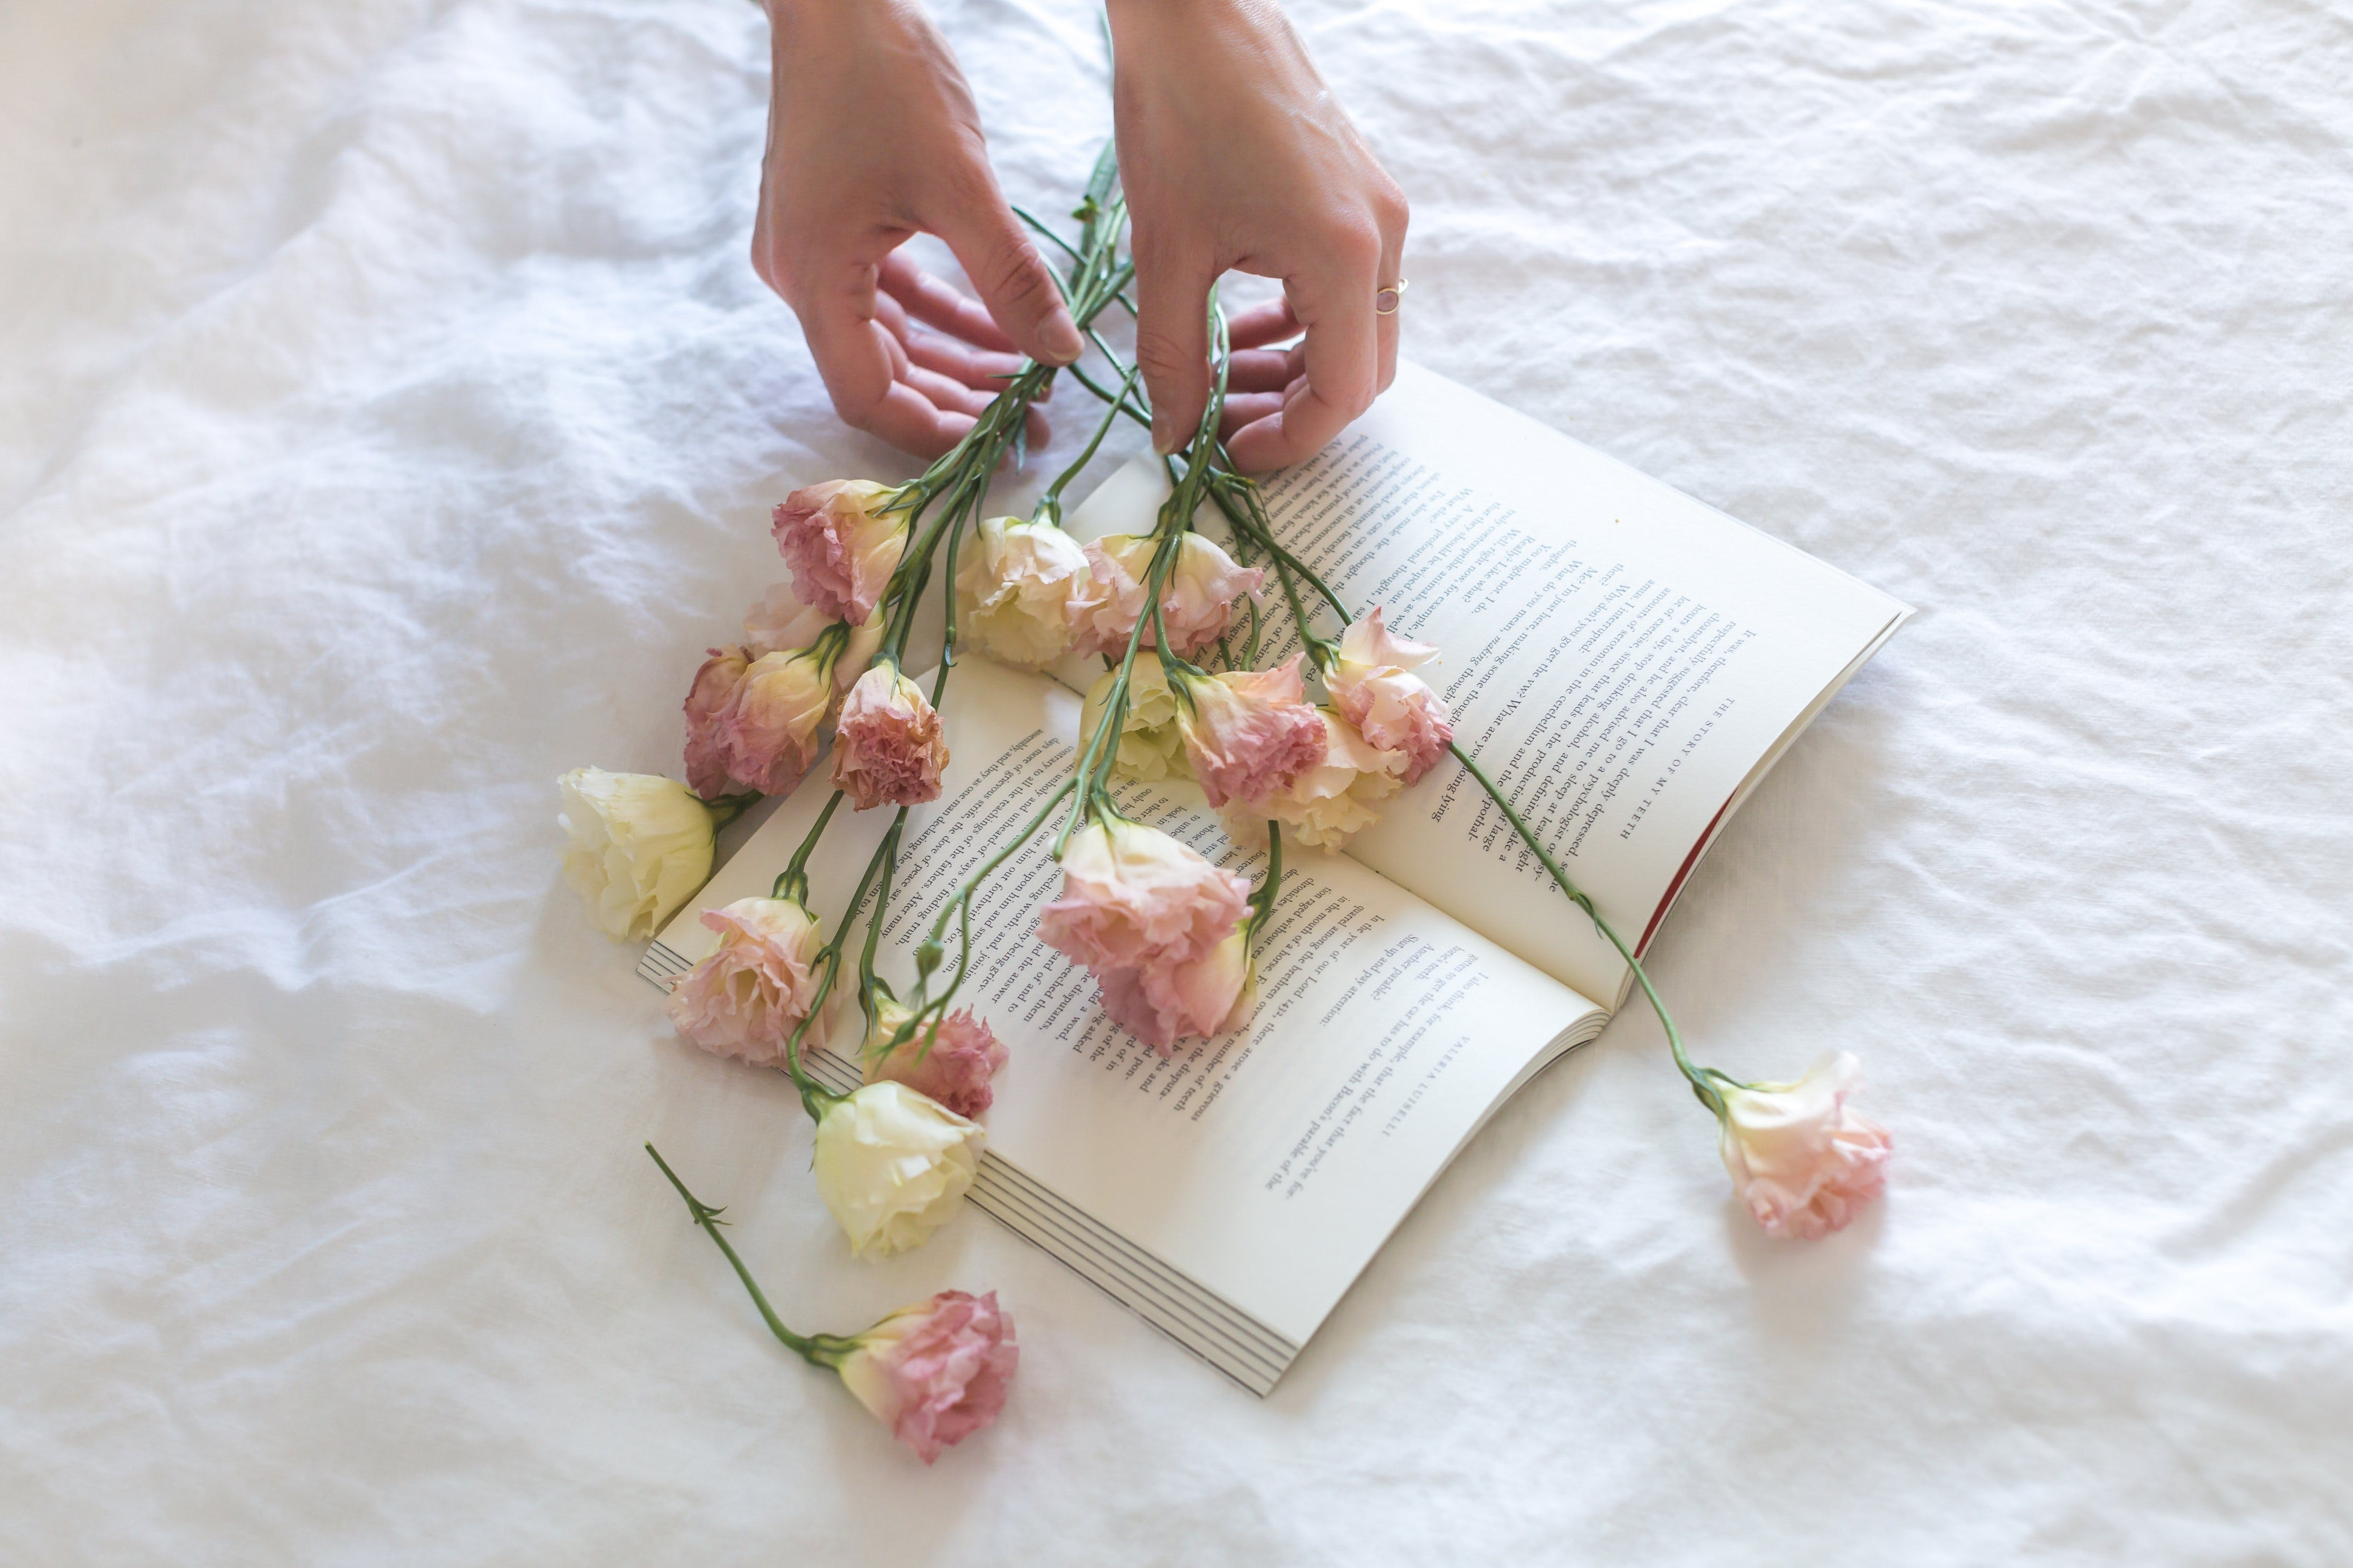 Pink-and-white Roses on Top of Open Book Nestled on White Textile